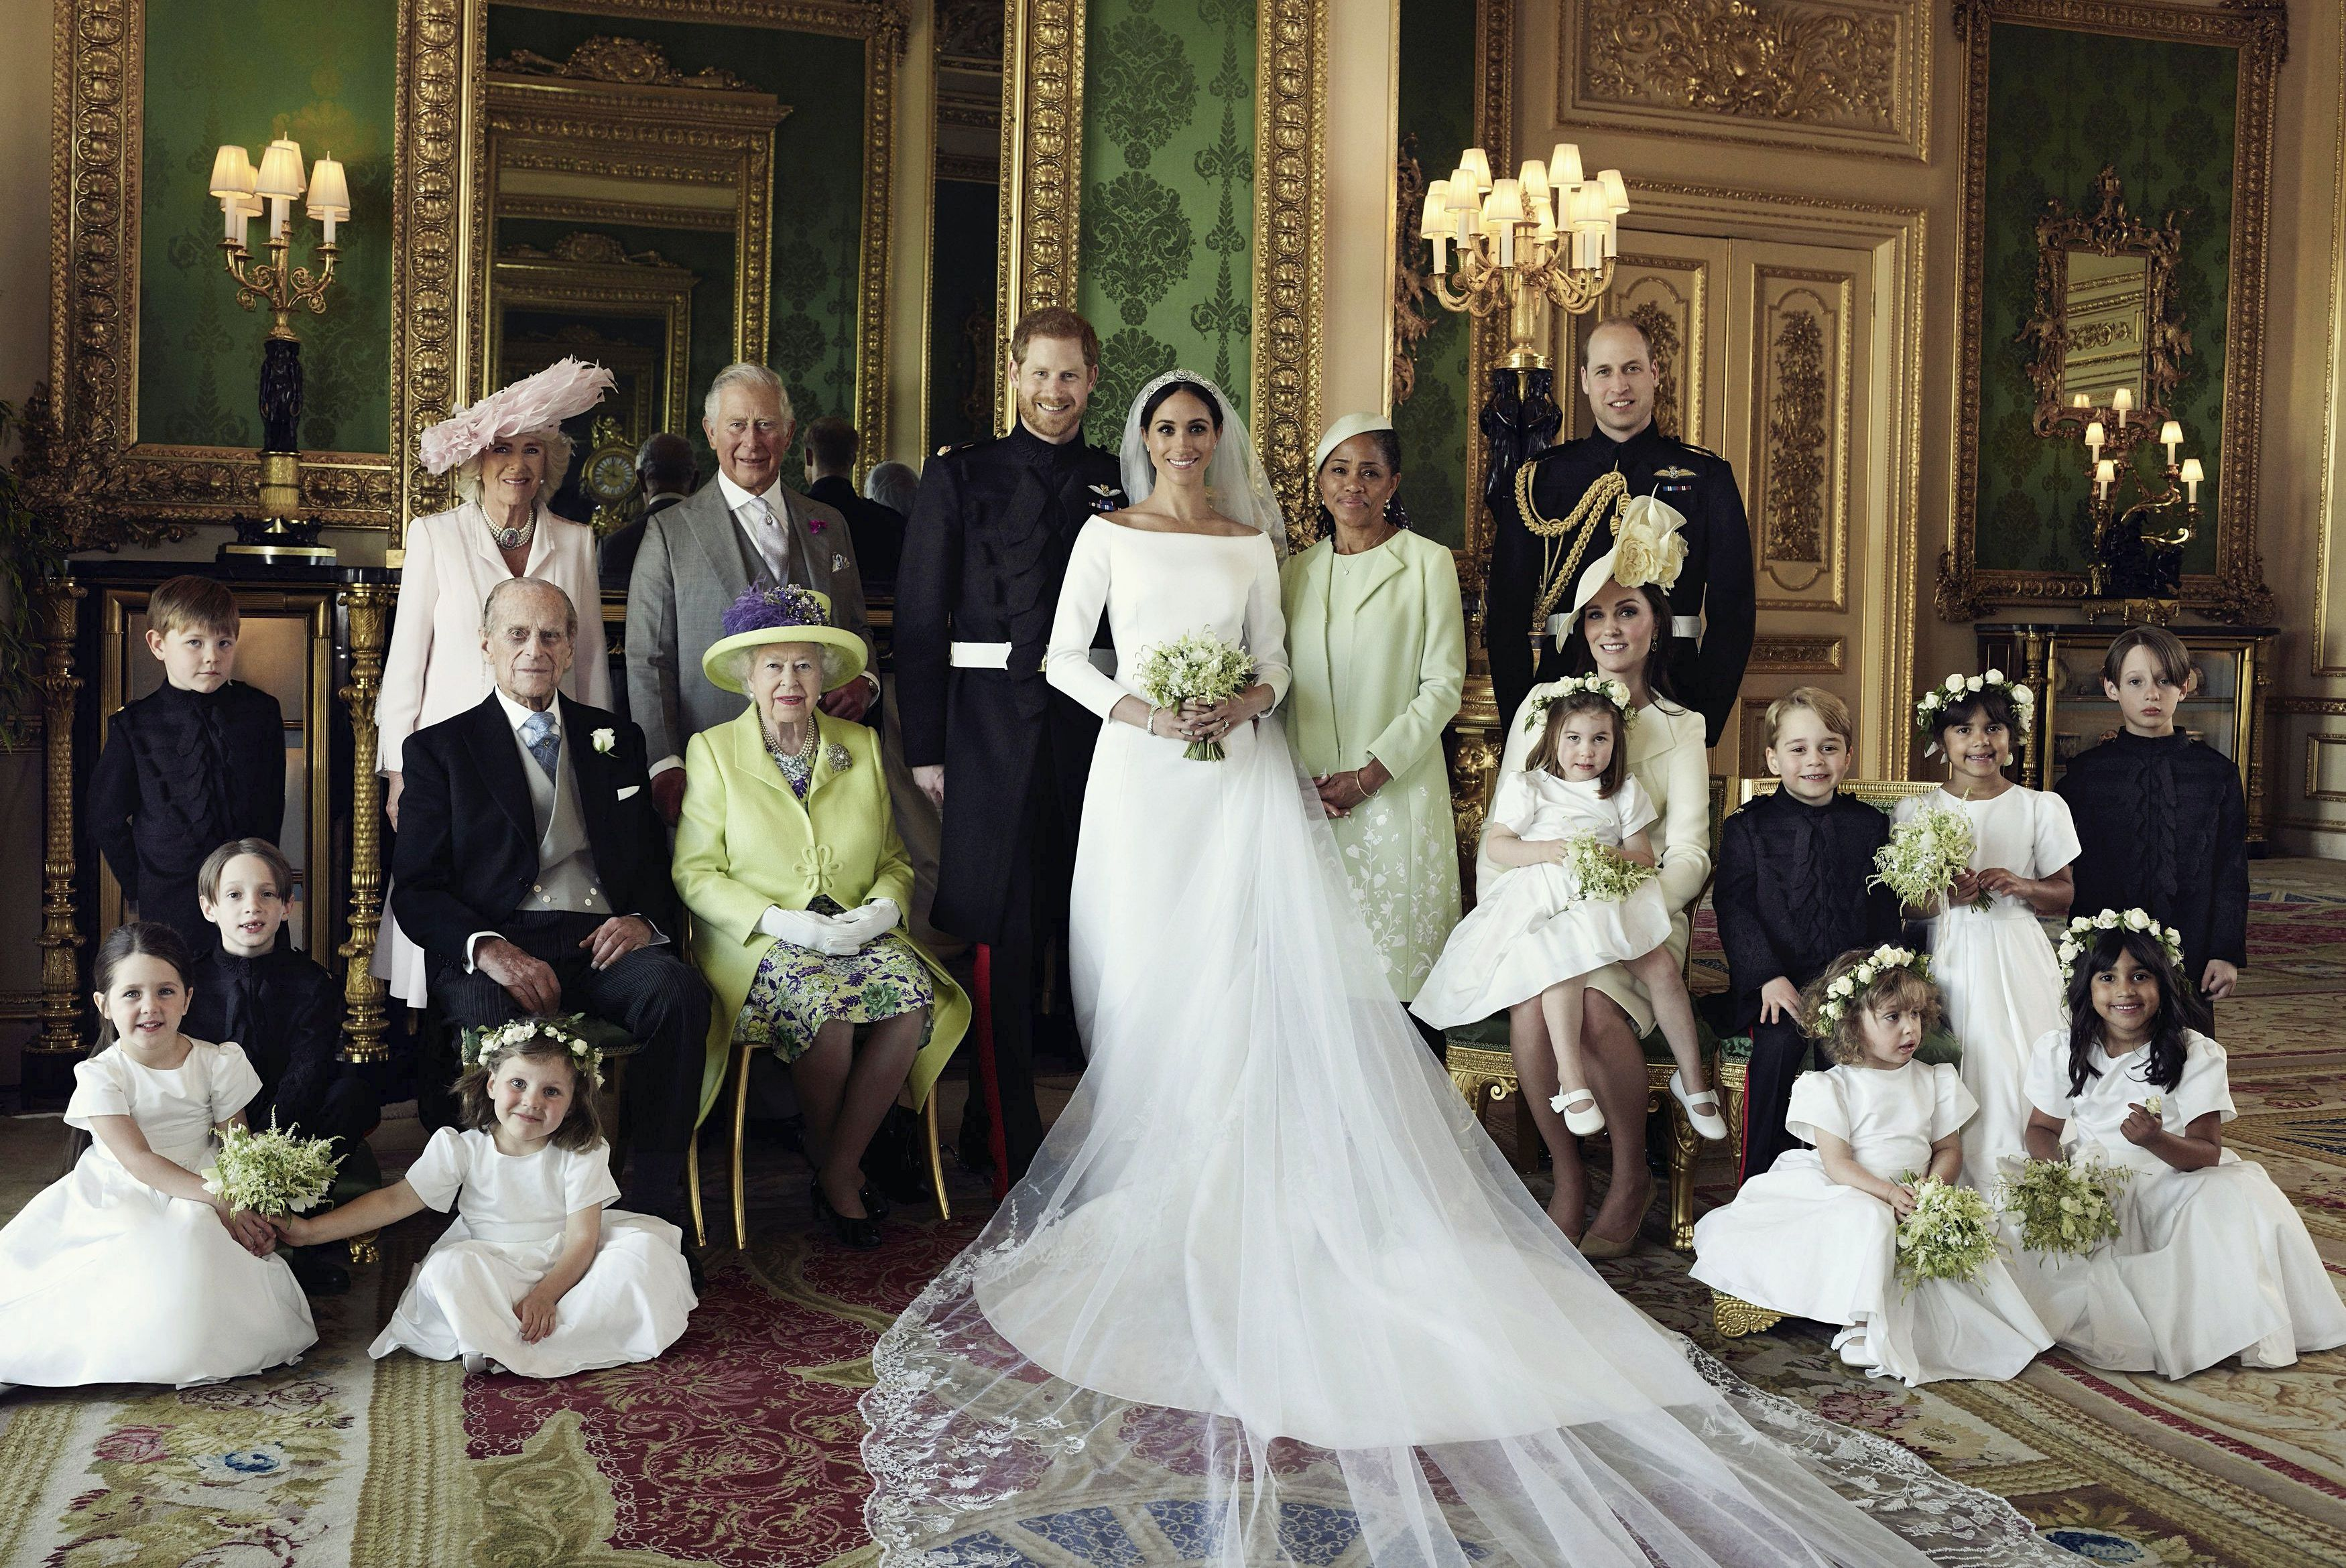 Why It's Significant Where Everyone Is Standing in the Official Royal Wedding Family Portrait